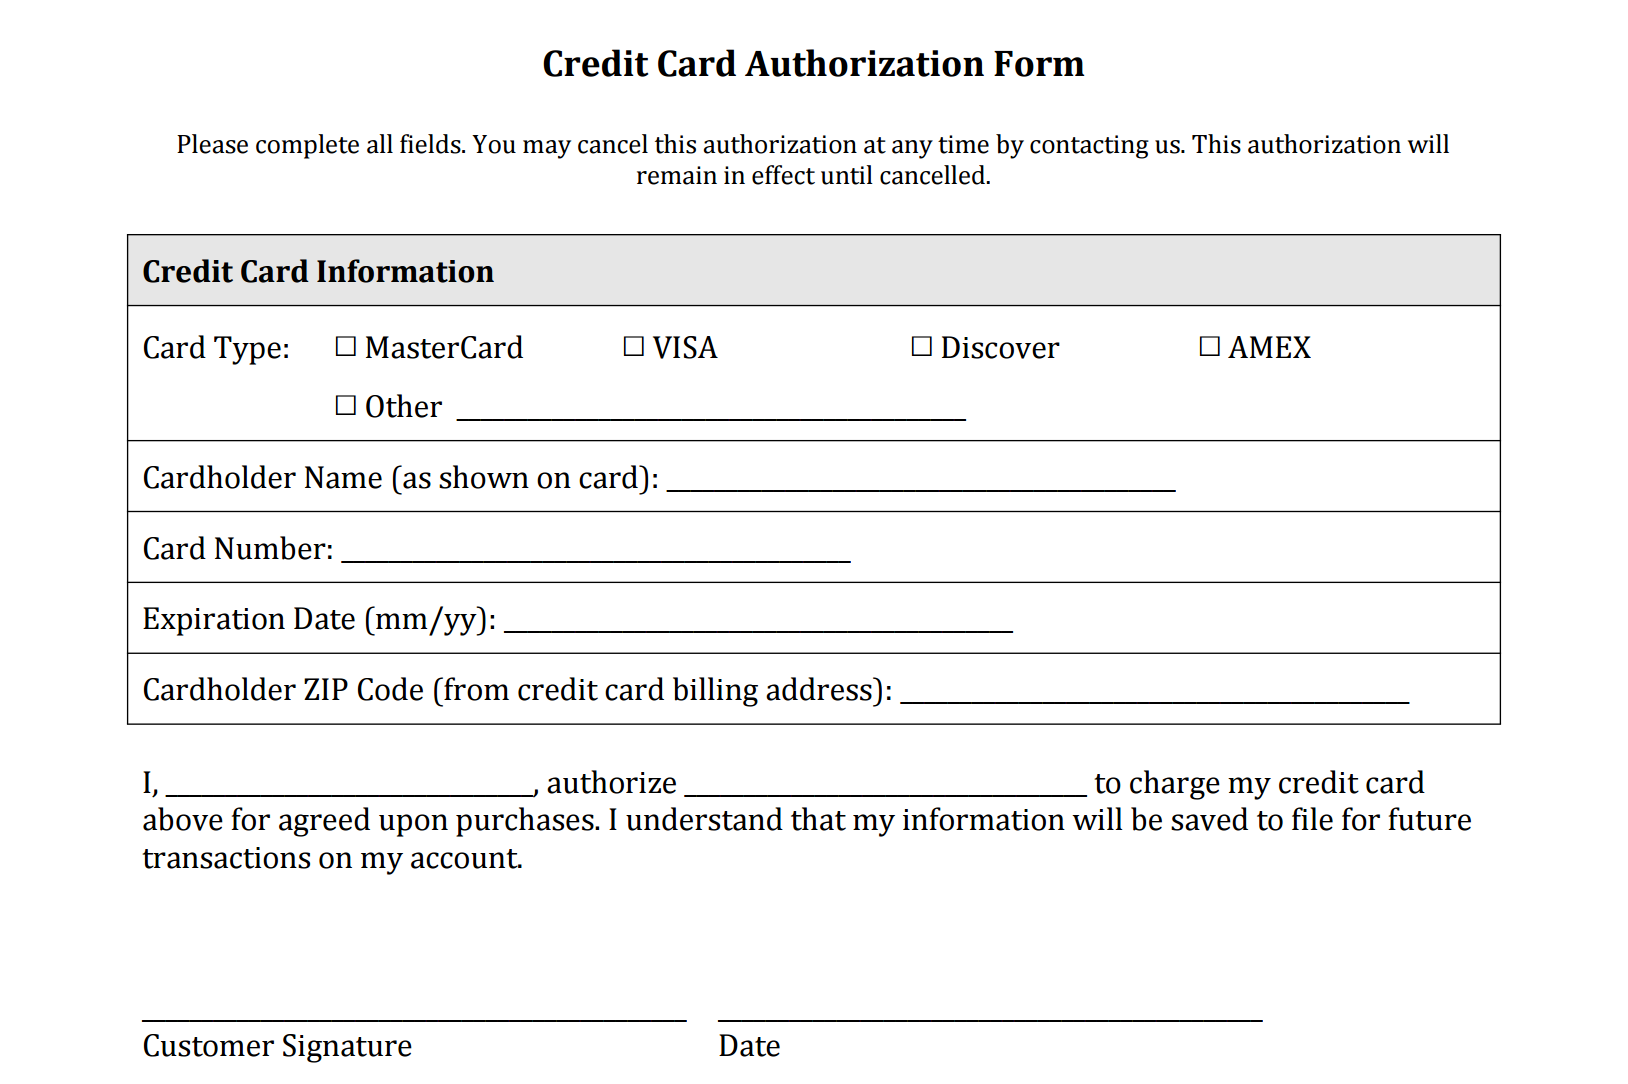 Credit Card Authorization Form Templates [Download]